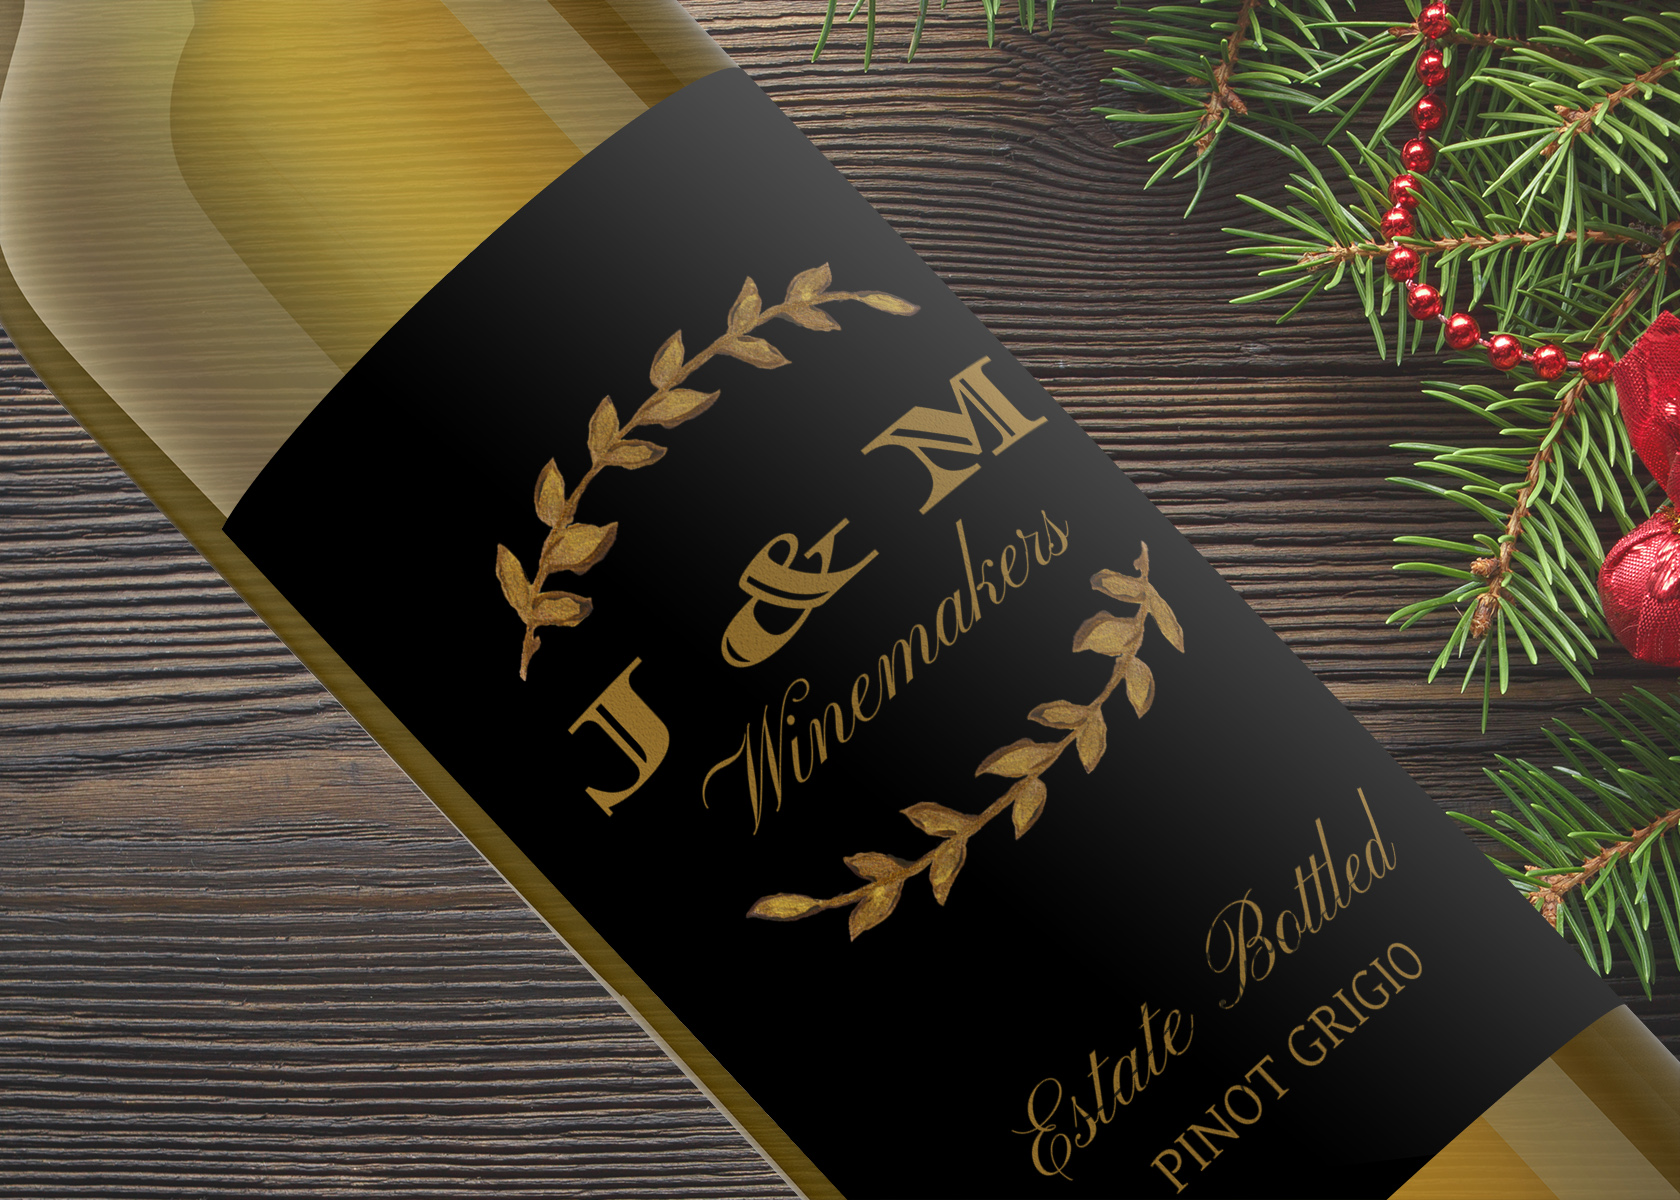 Inexpensive gifts don't have to look cheap. This custom wine label is only $3.75 and is waterproof, self-adhesive, and ships within two business days.